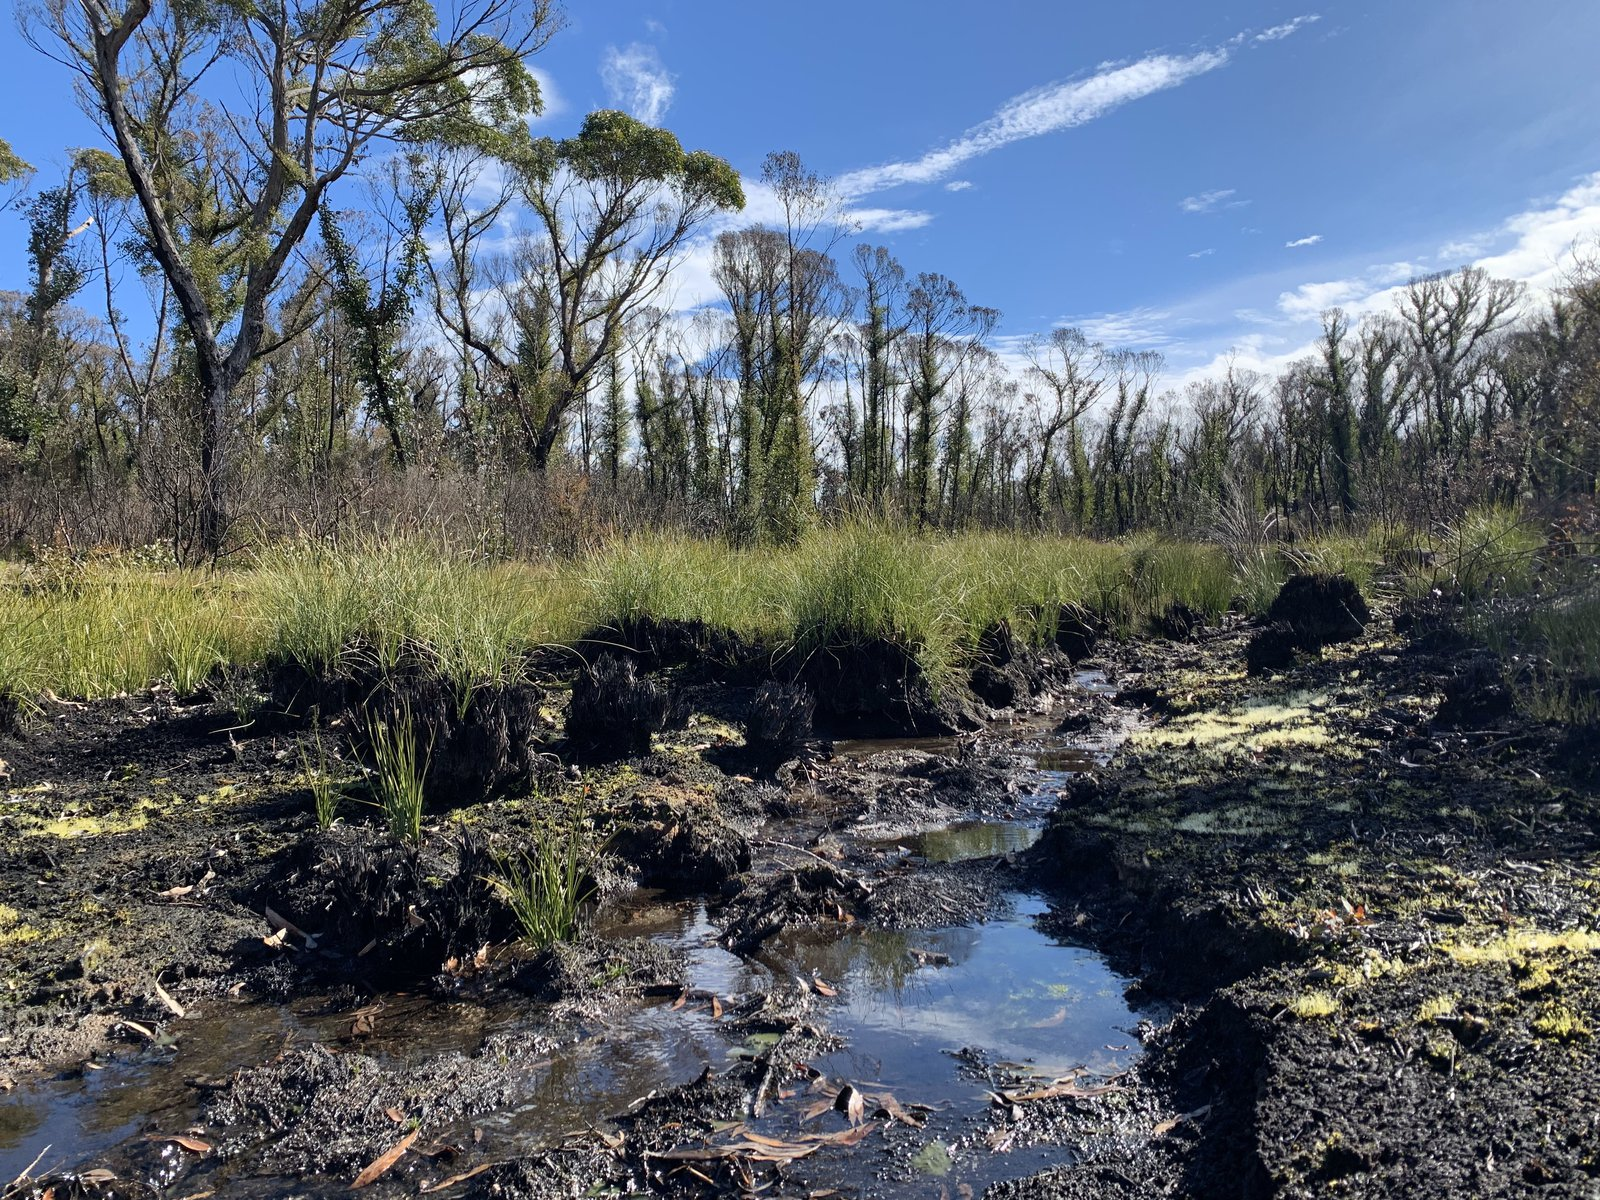 Stream in areas burnt in 2019/20 fires